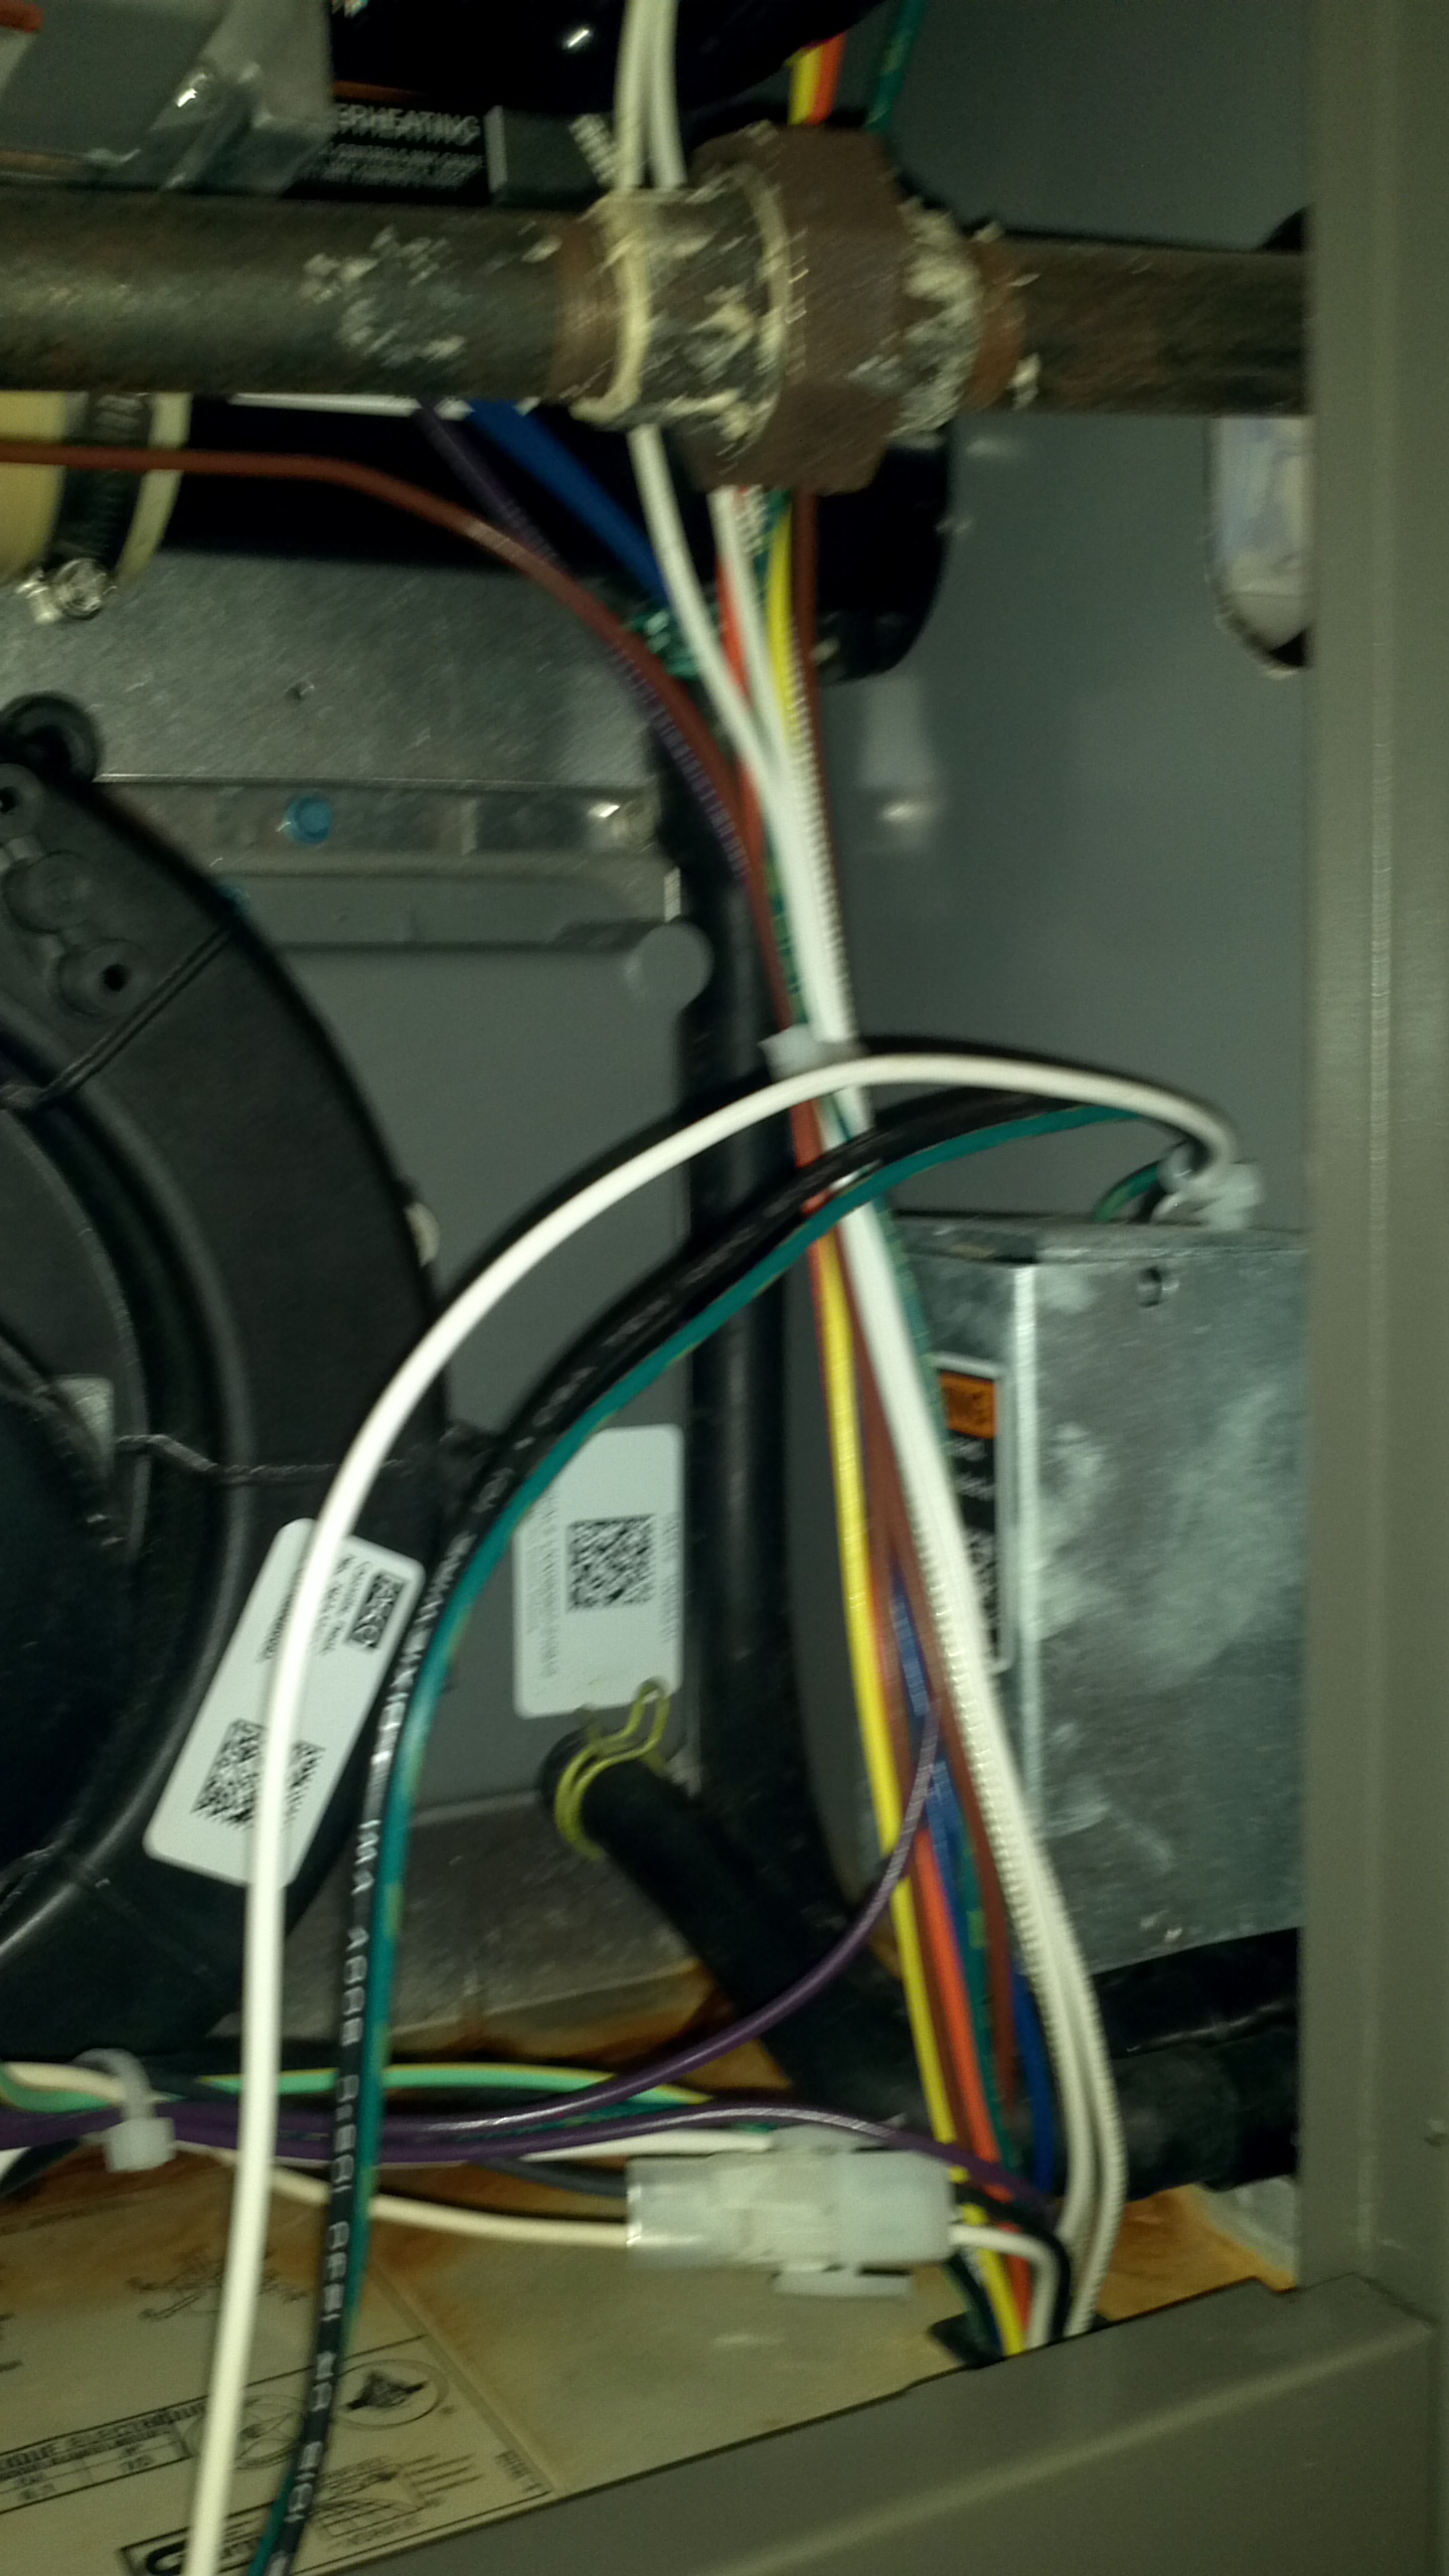 I Have A Lennox C33 36b 2f 4 Furnace And It Is Leaking Water